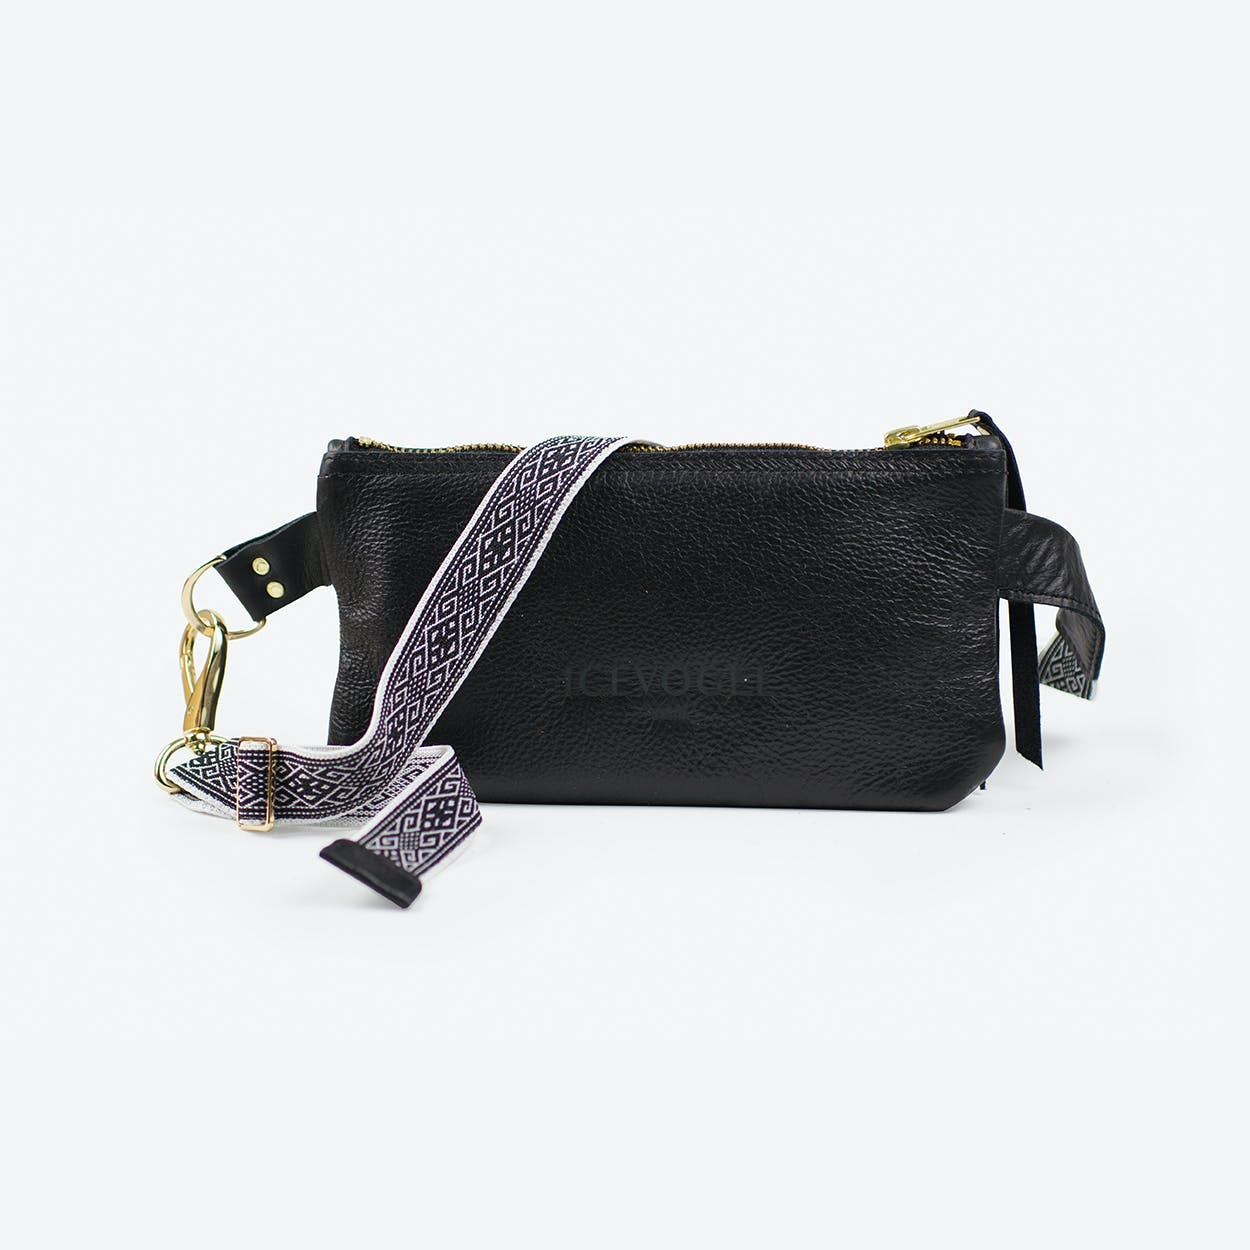 Hipbag Saatkrähe 1 in Black Cow Leather and Bohemian Strap